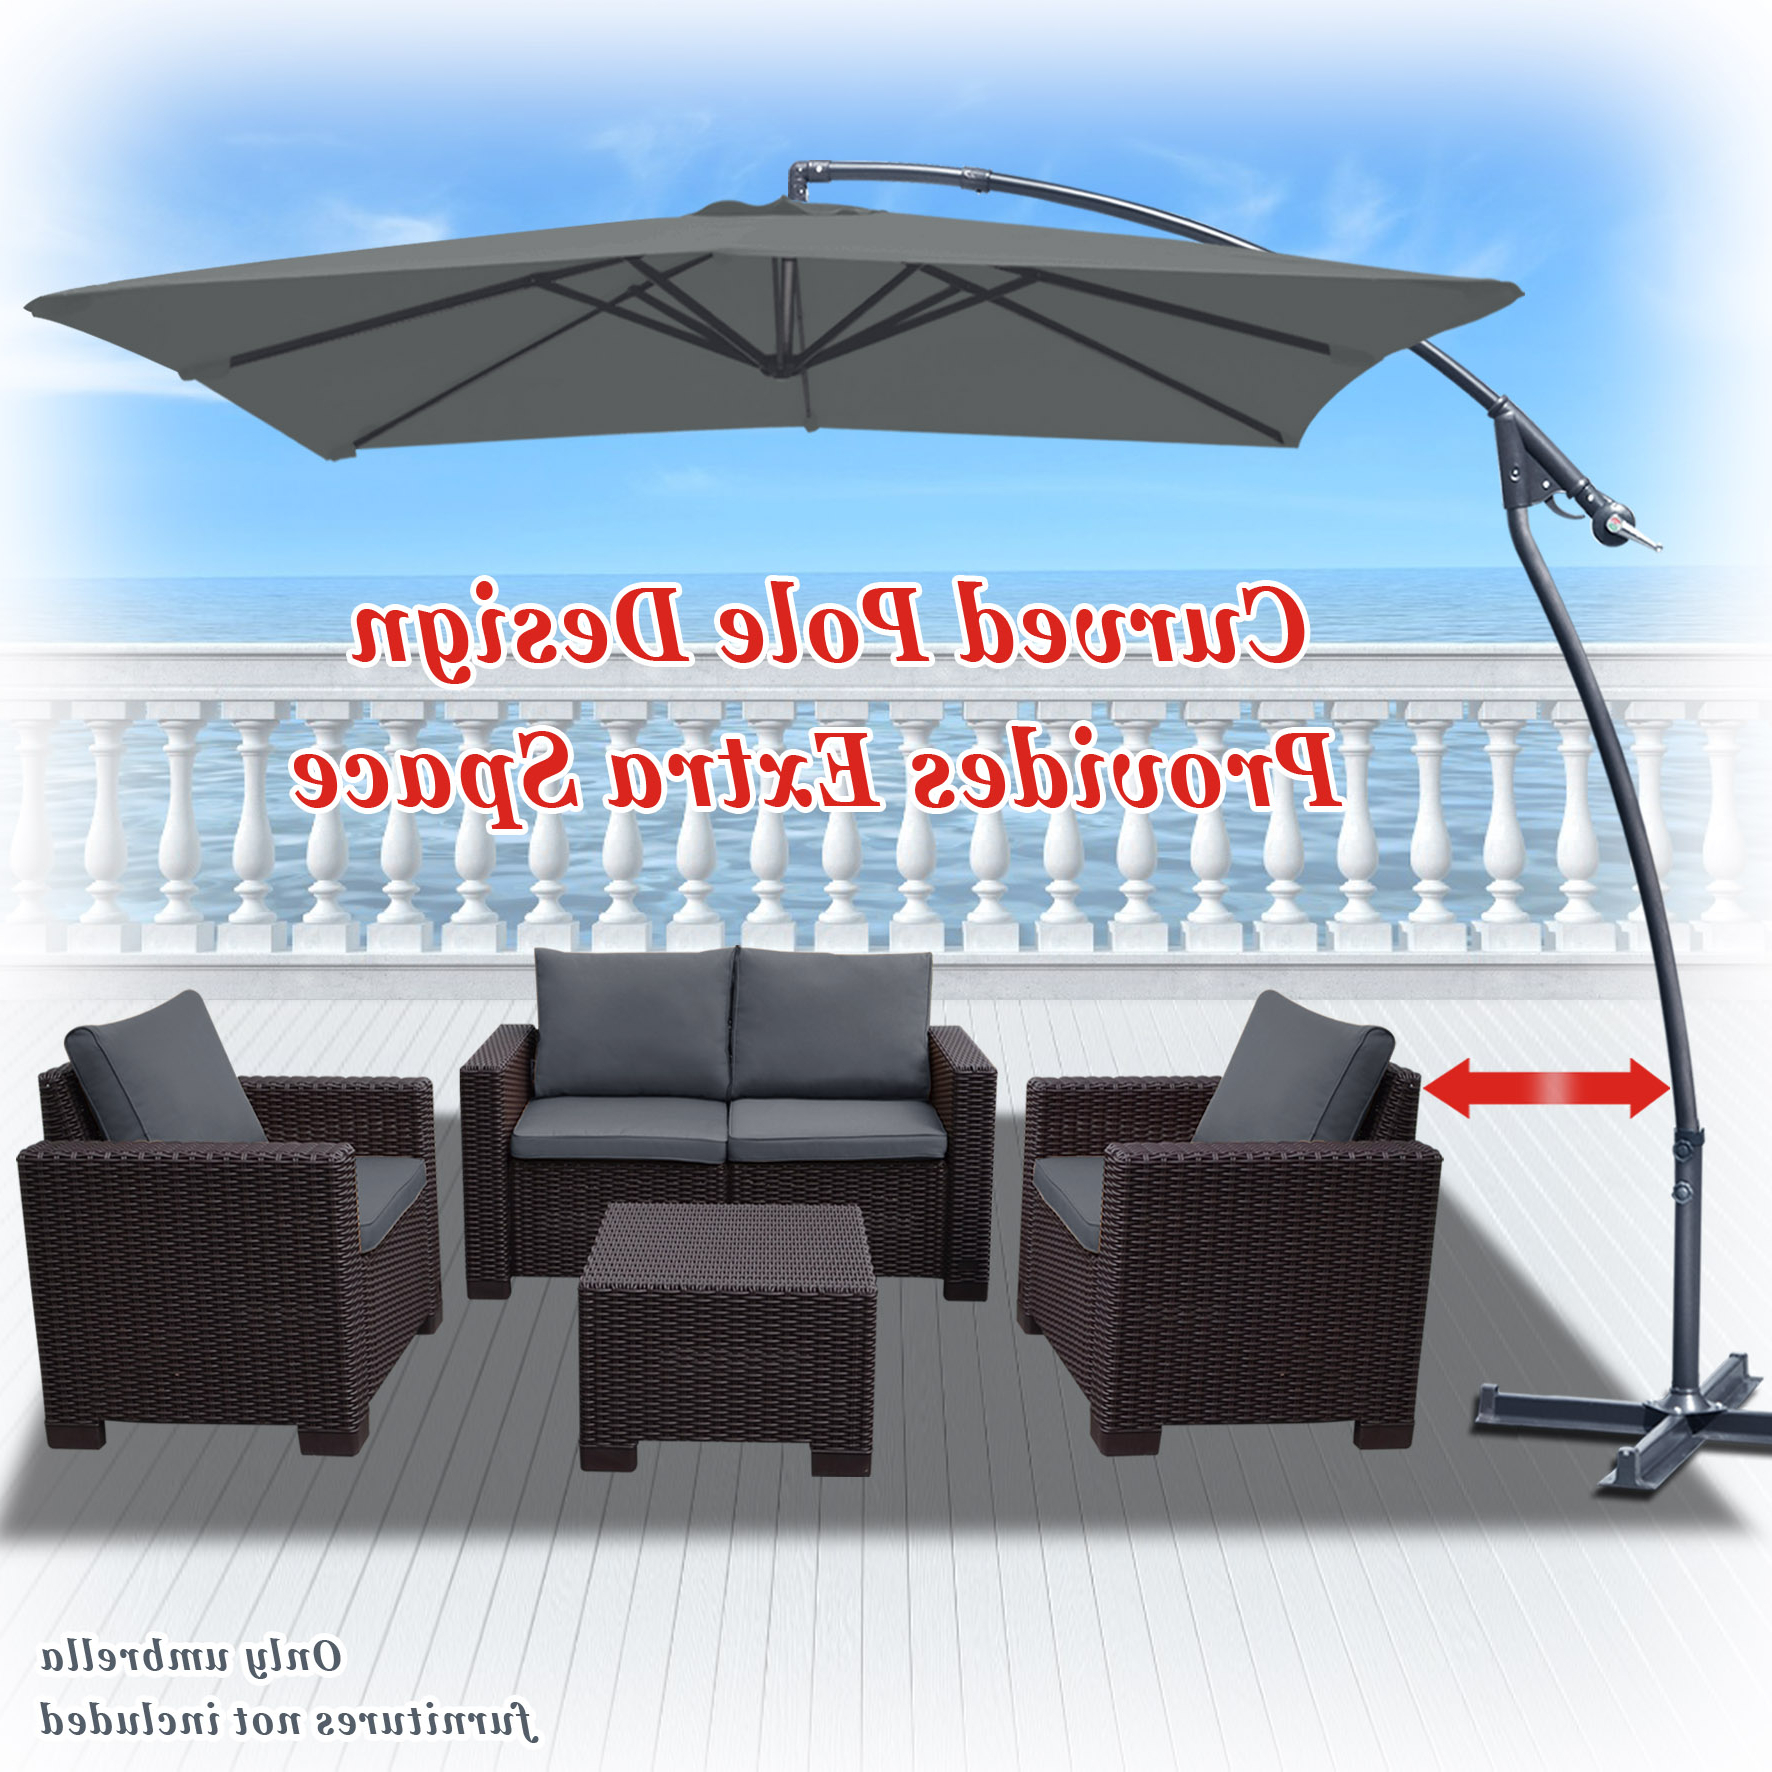 Most Recent Justis Cantilever Umbrellas For Strong Camel 8' X 8' Cantilever Hanging Umbrella Offset Patio Umbrella Garden Outdoor Sunshade Market 360 Degree Rotational Function In Grey Color (View 6 of 20)